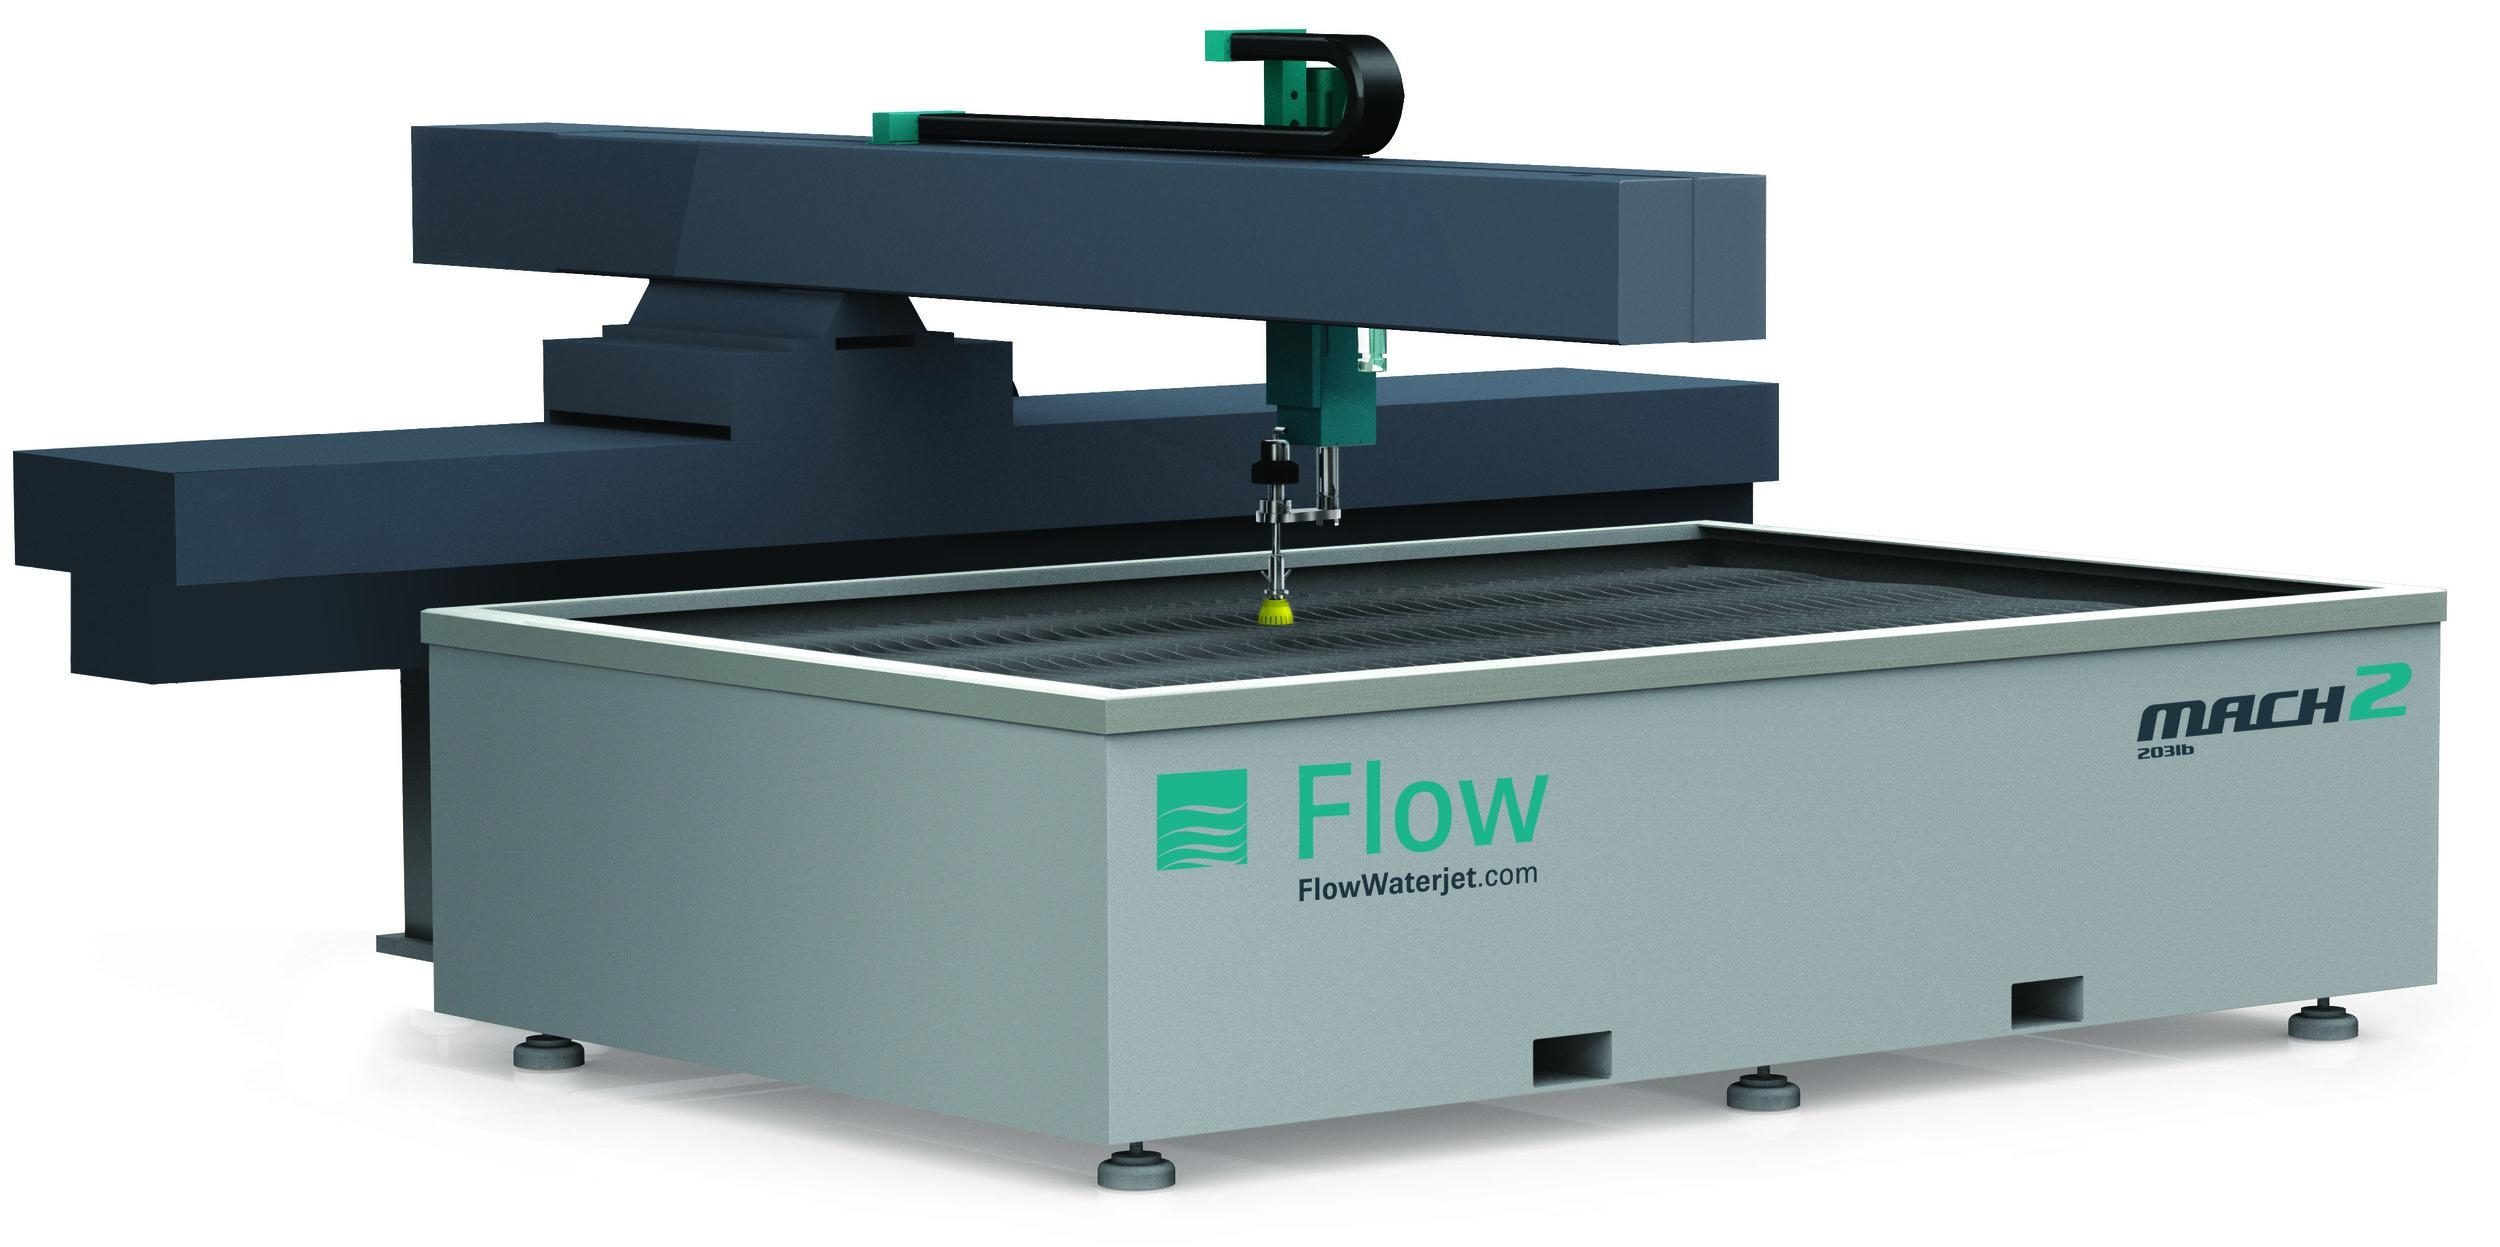 Powered By Flow!